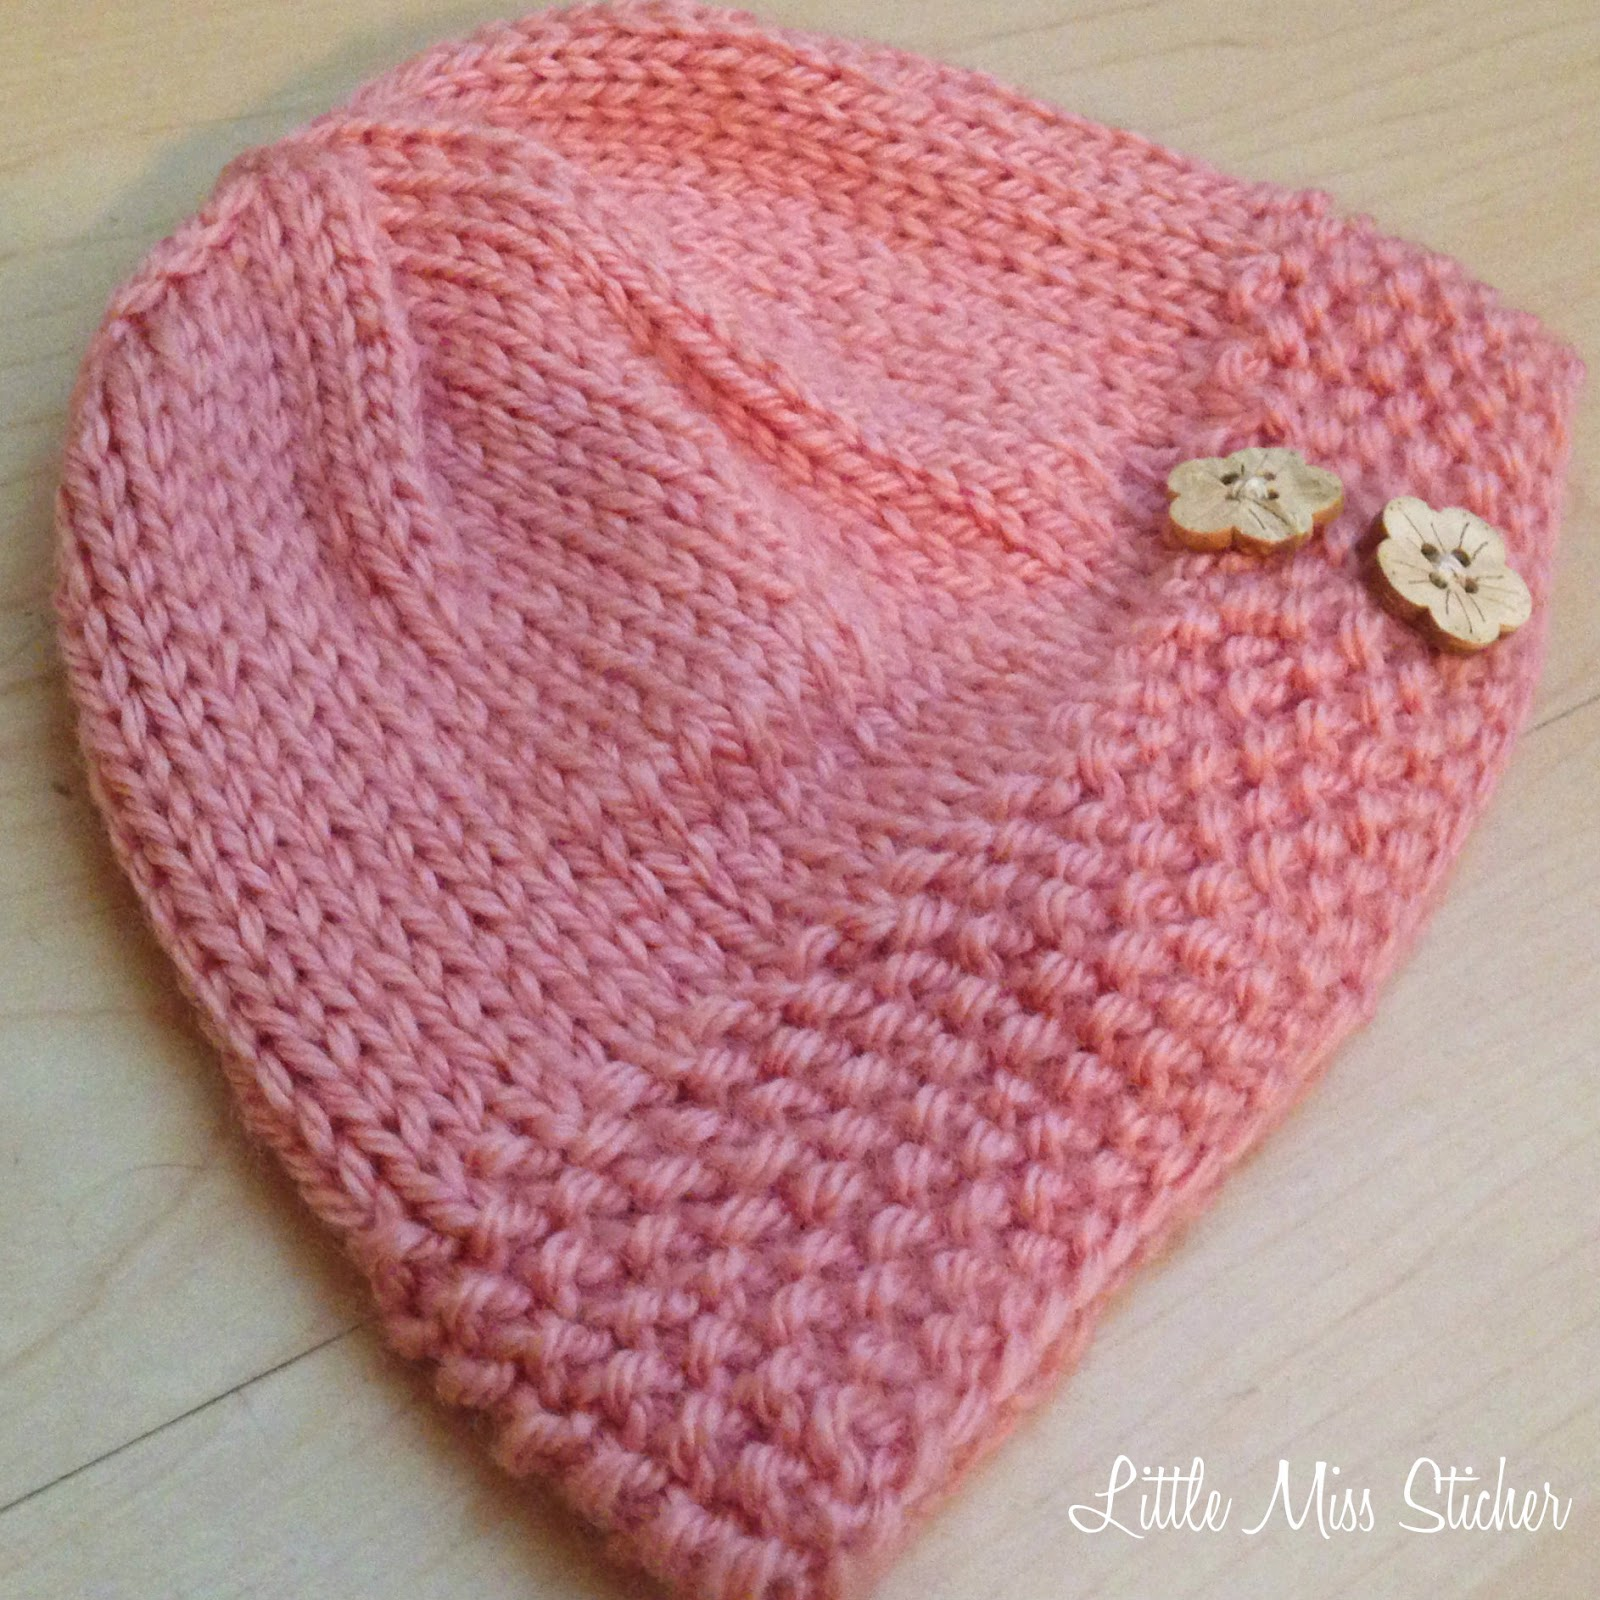 Newborn Beanie Knitting Pattern : Little Miss Stitcher: Bitty Beanie Free Knit Pattern